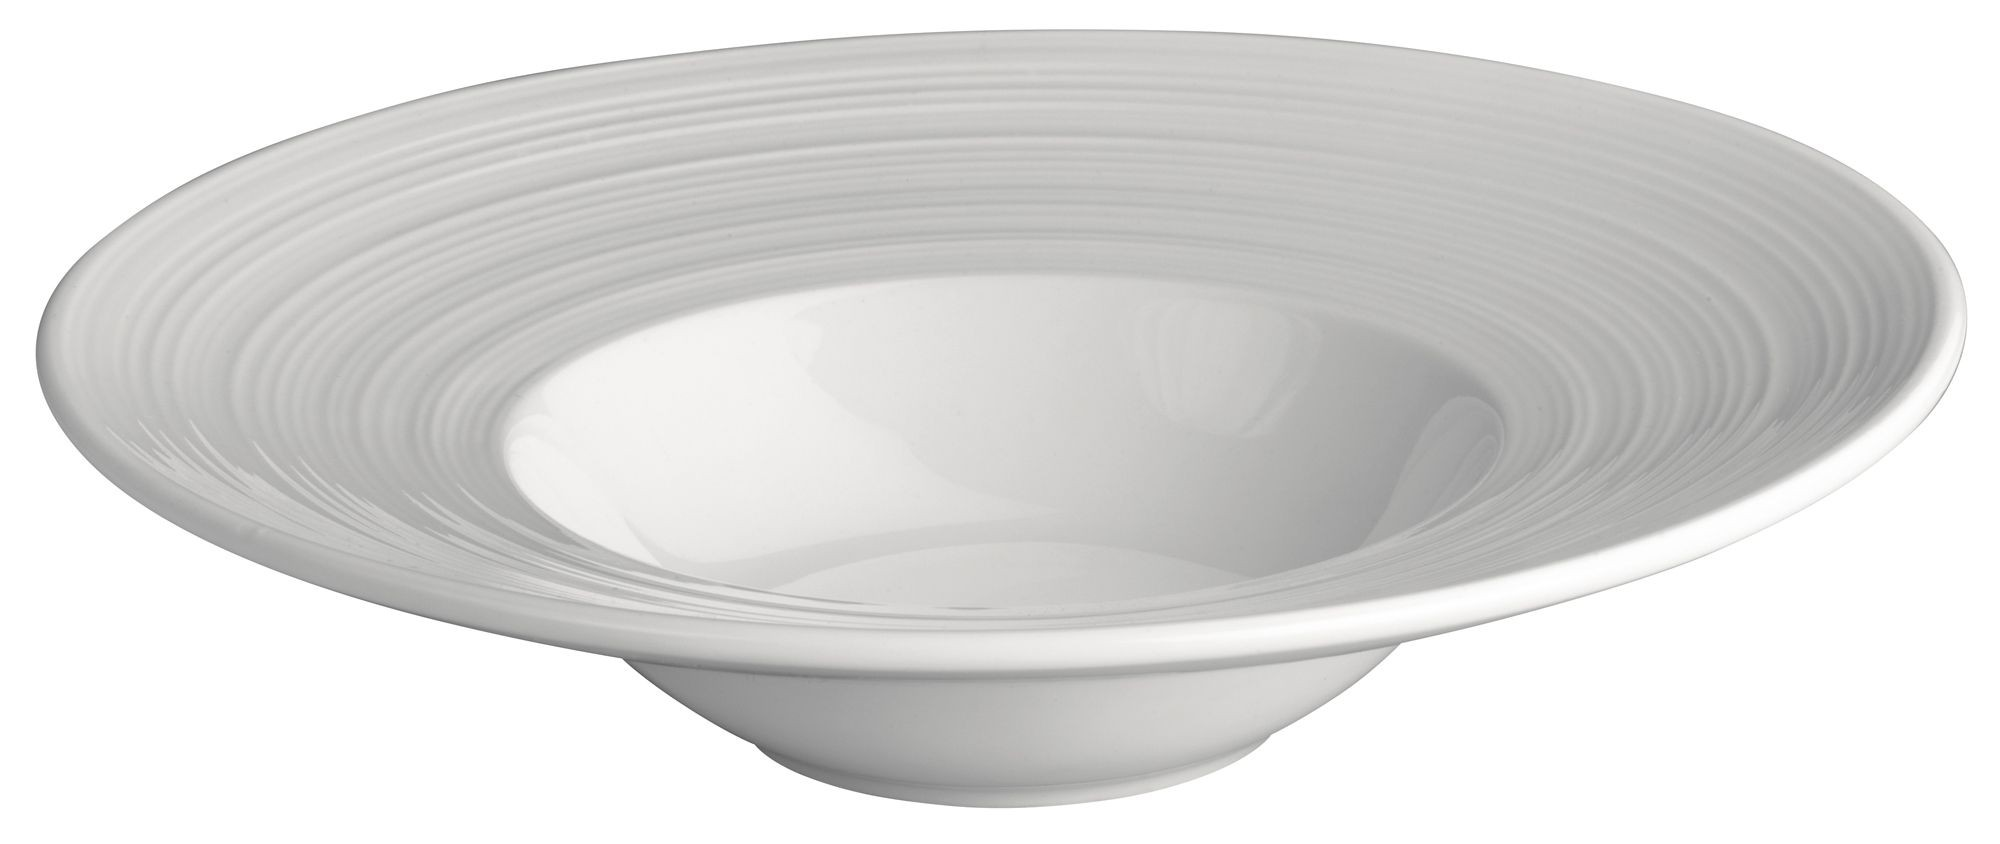 Winco WDP022-101 Zendo Porcelain Bright White Bowl 7-1/4""